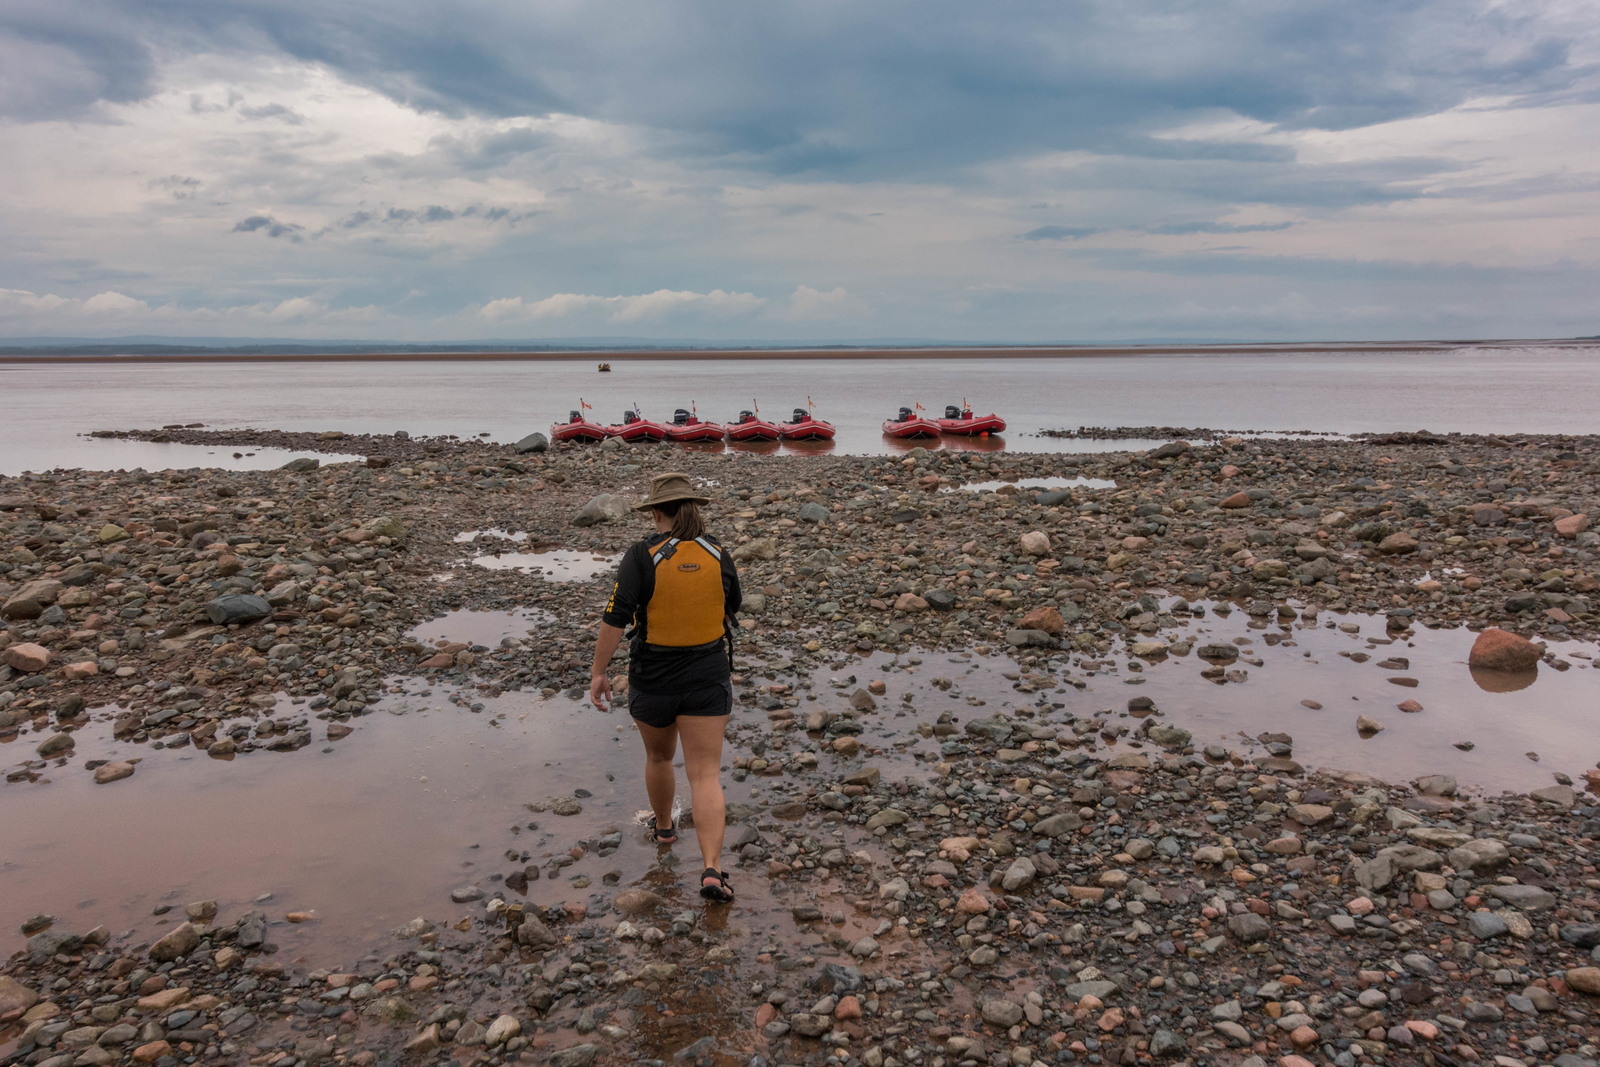 tidal bore rafting guide